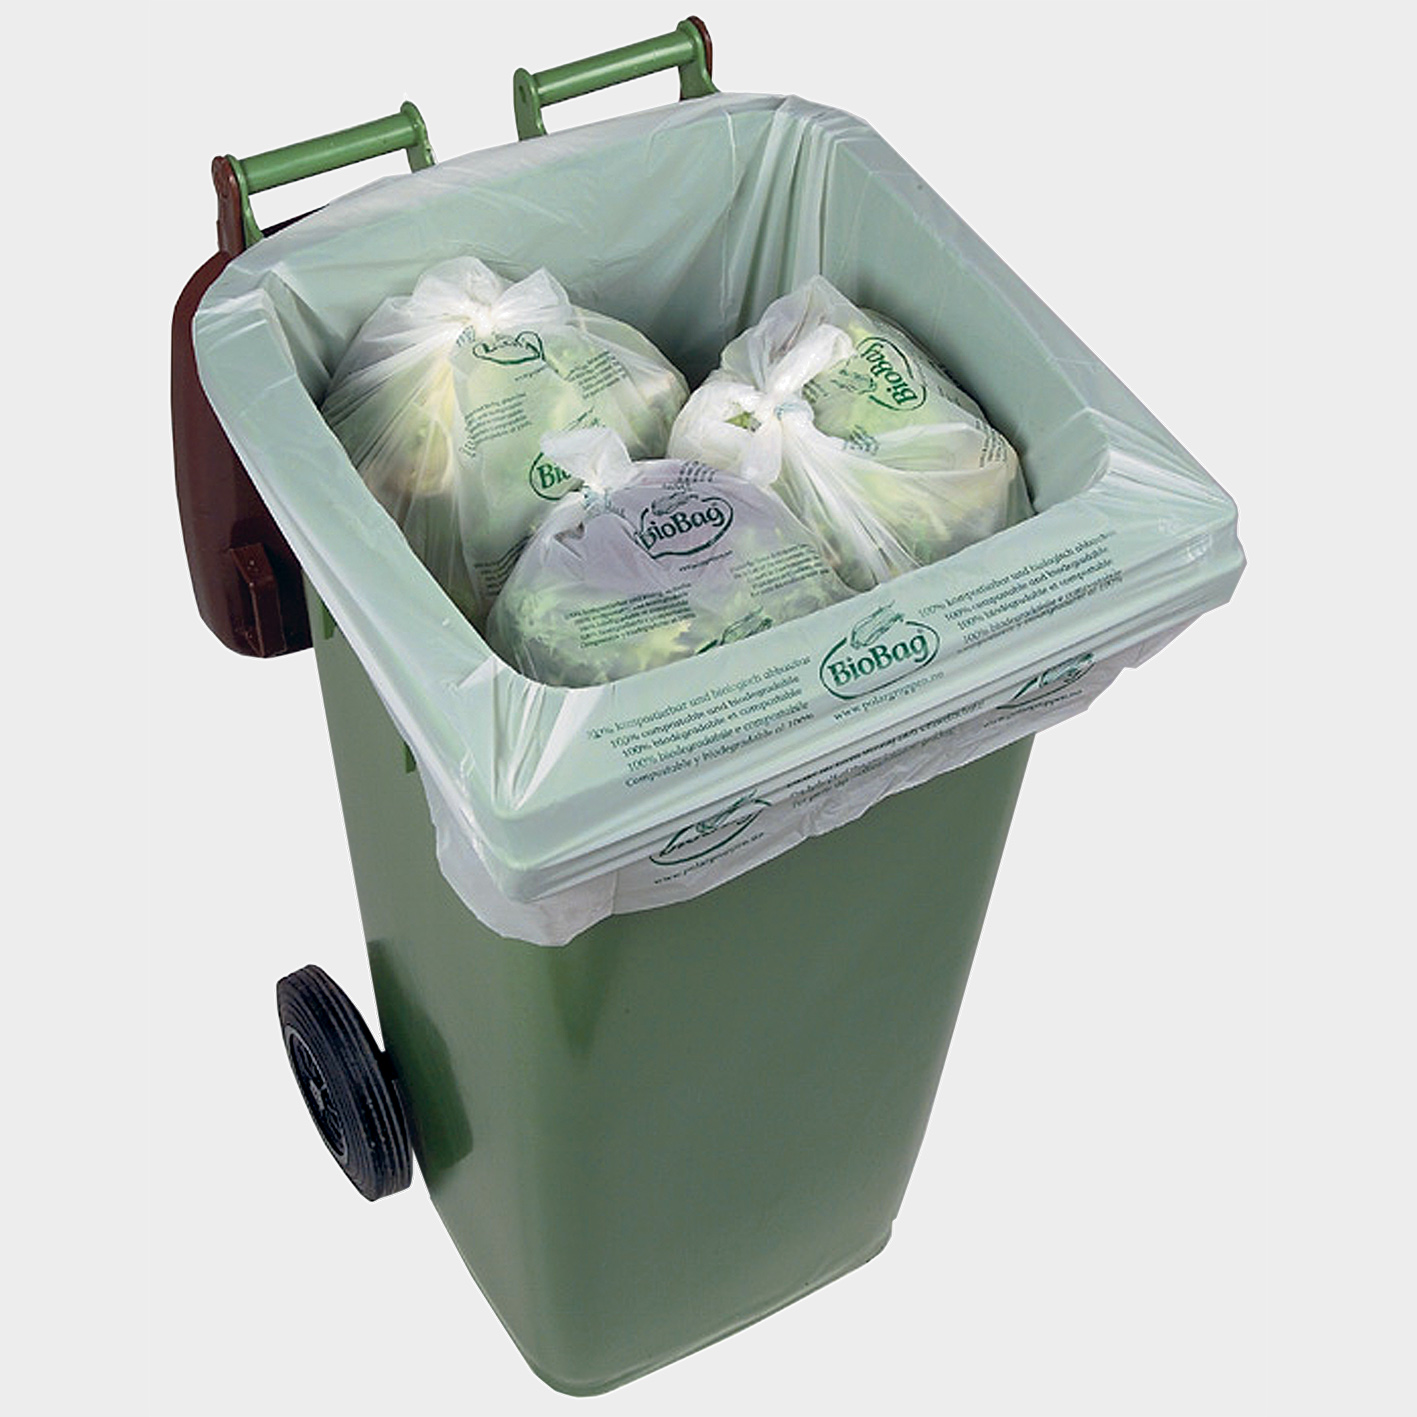 degradable recyclable compostable bin